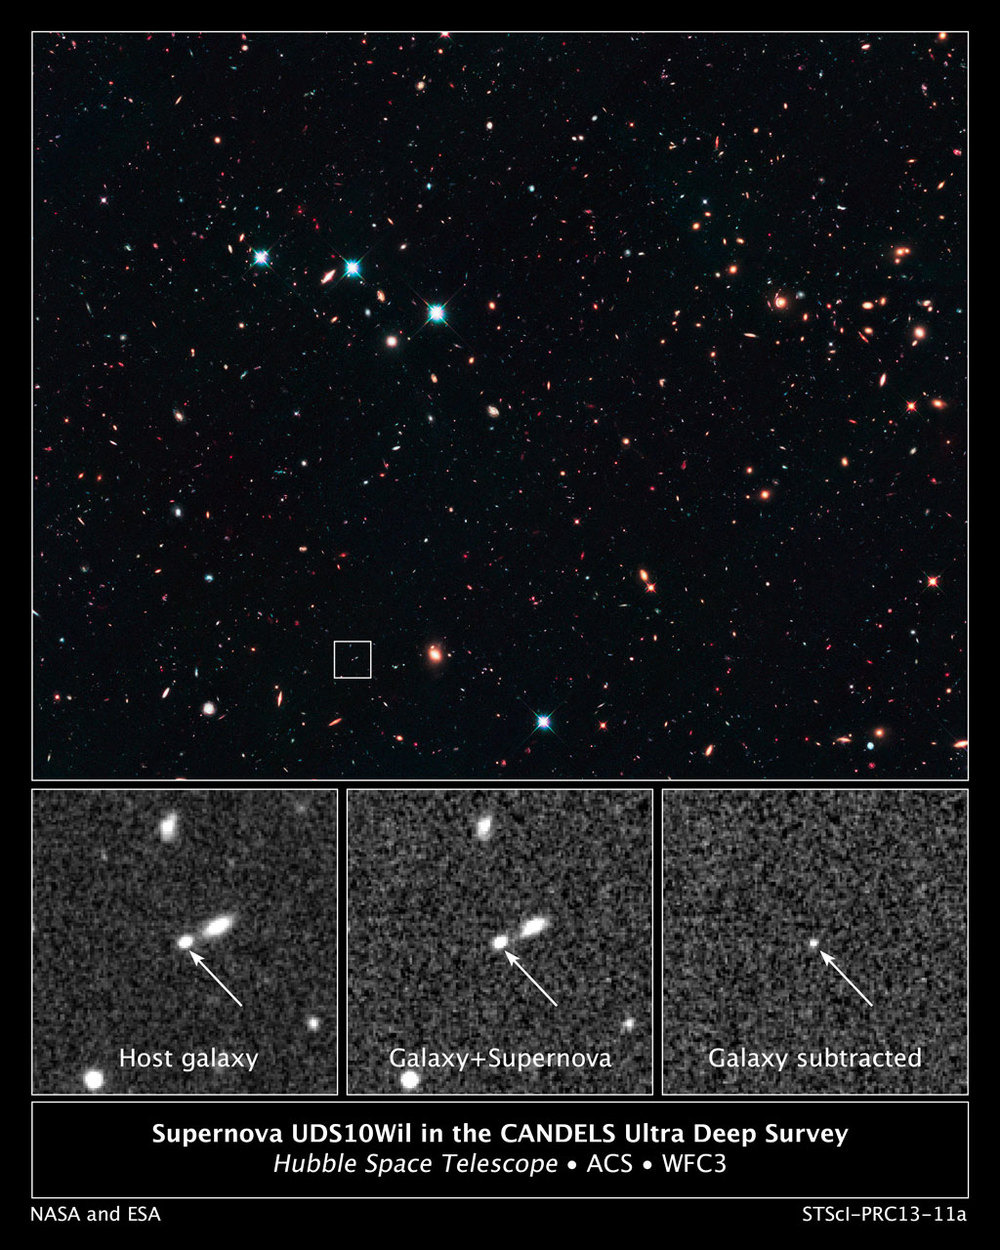 Supernova UDS10Wil in the CANDELS Ultra Deep Survey